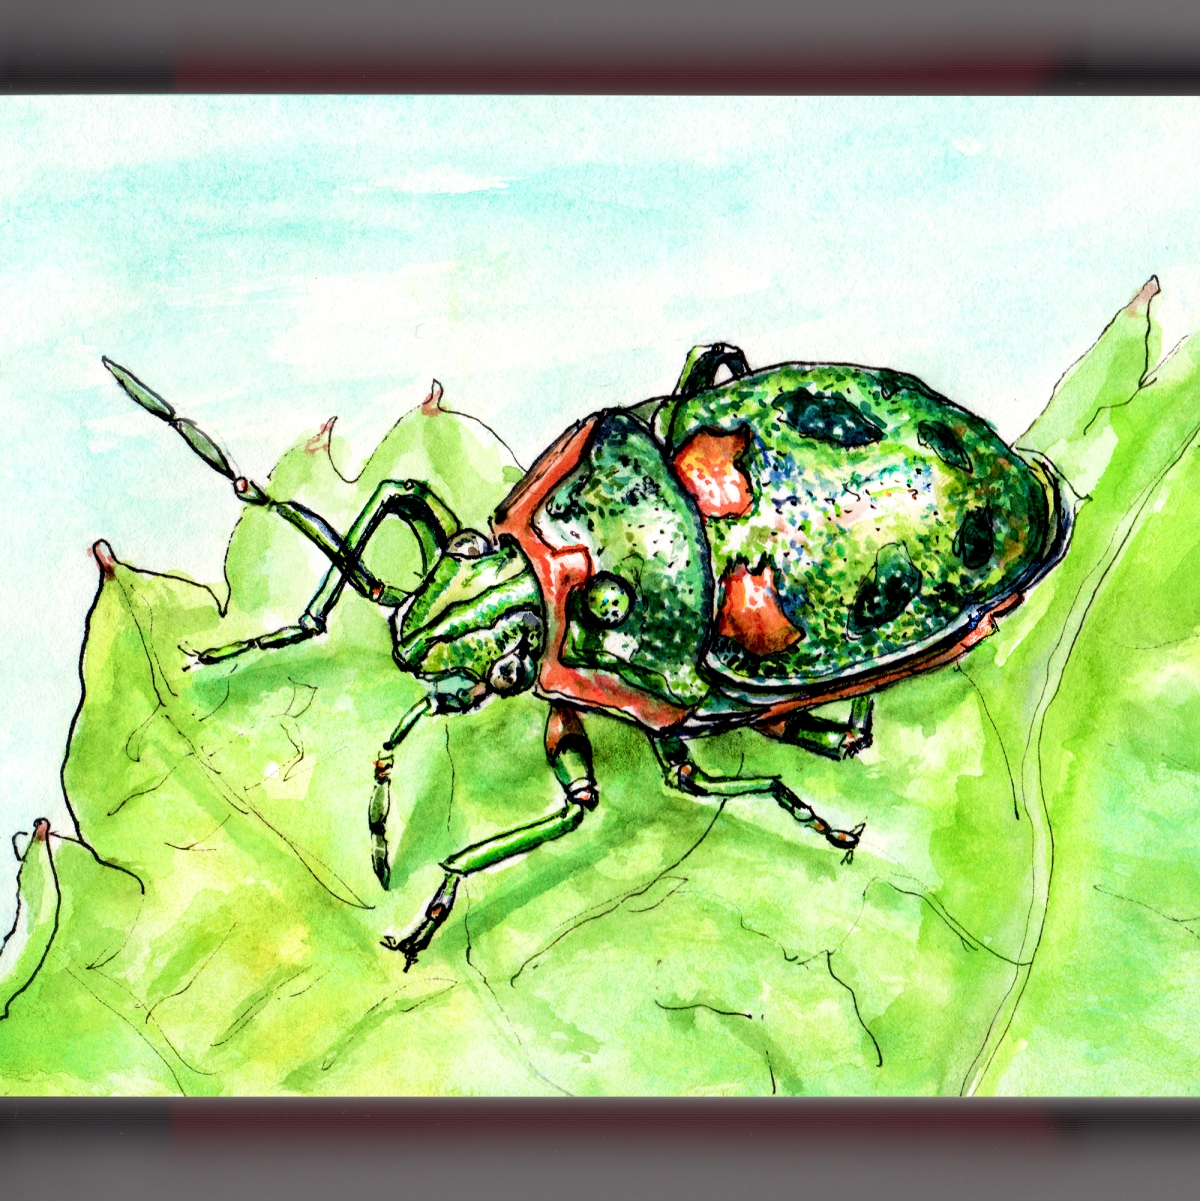 Day 20 - #WorldWatercolorGroup Shiny Bug On A Leaf - #doodlewash